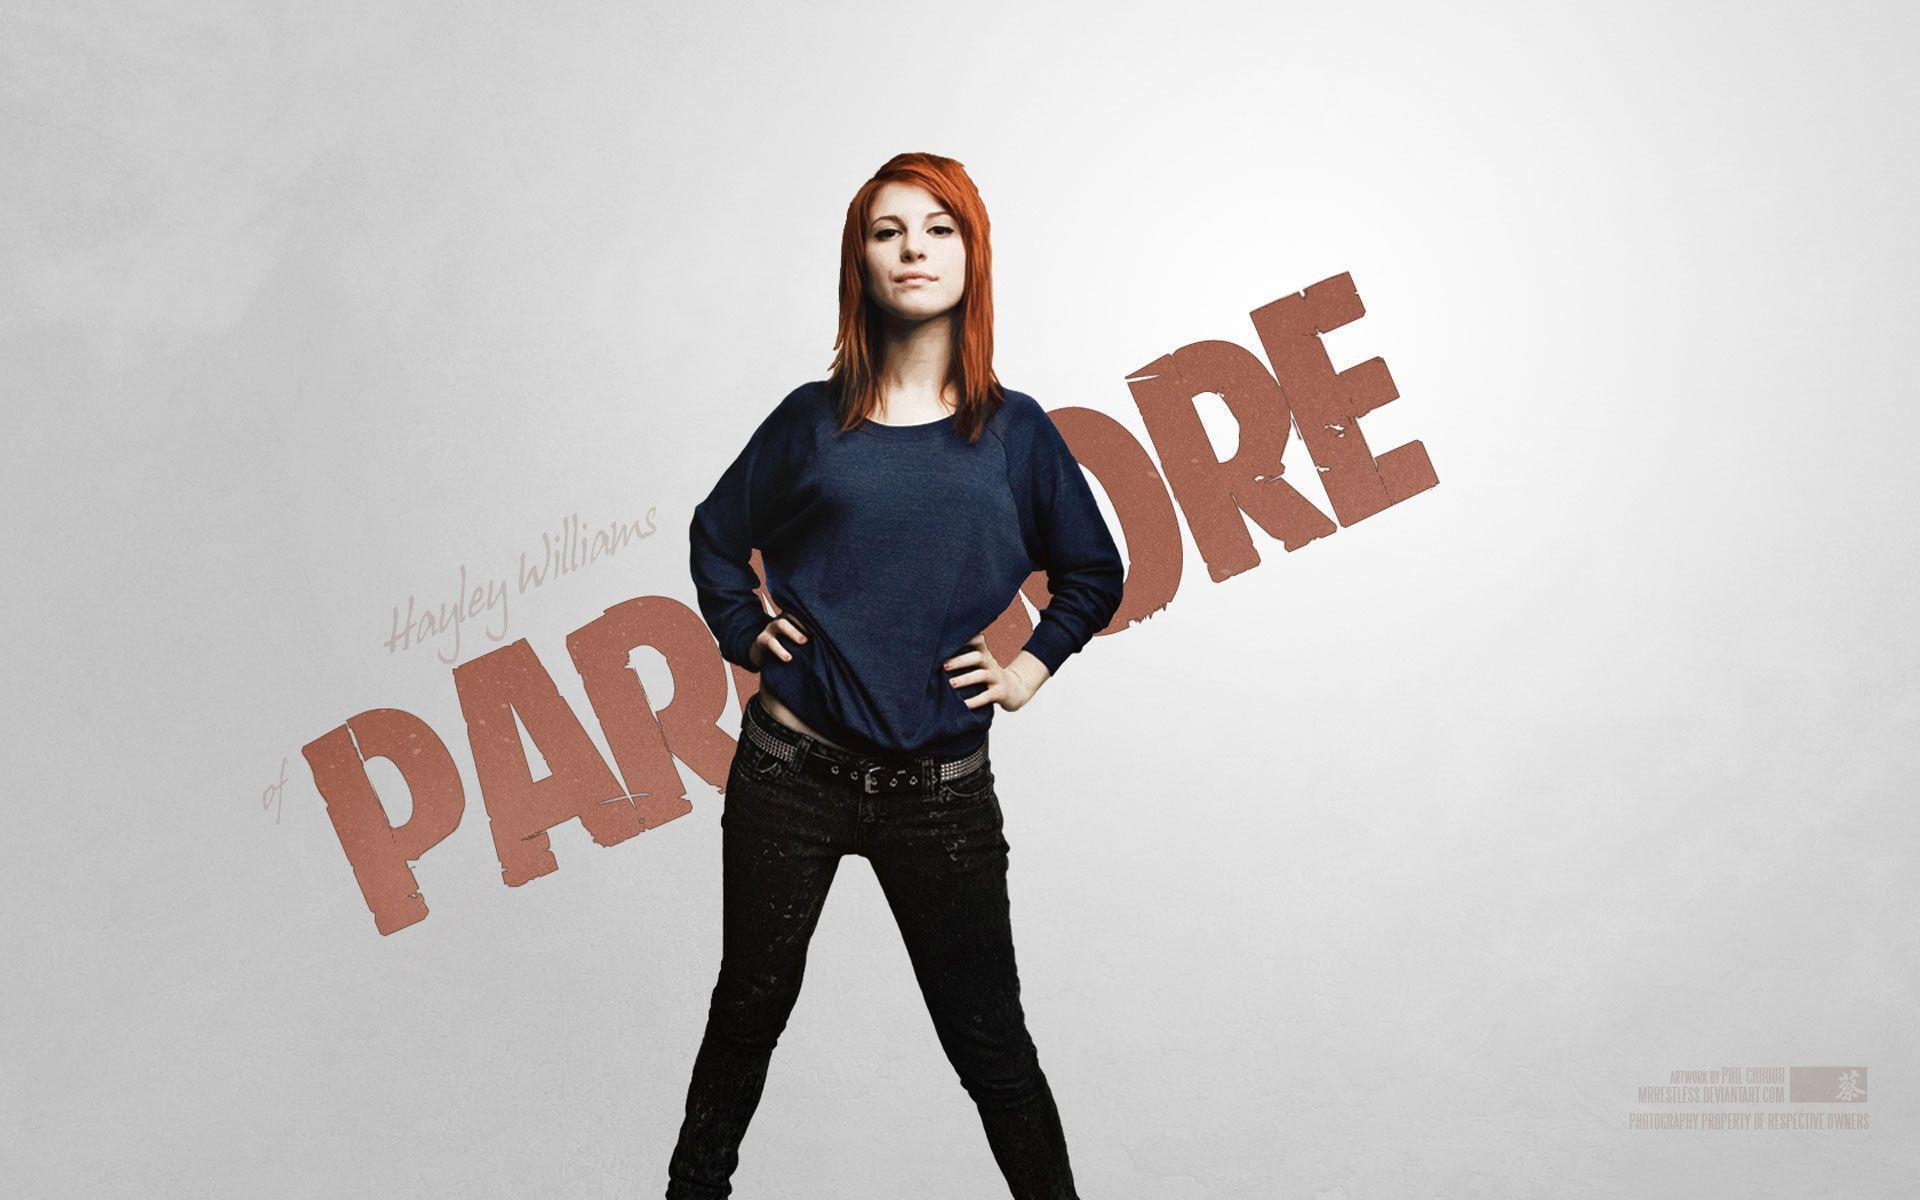 Hayley Williams Wallpaper 3   1920 X 1200 stmednet 1920x1200